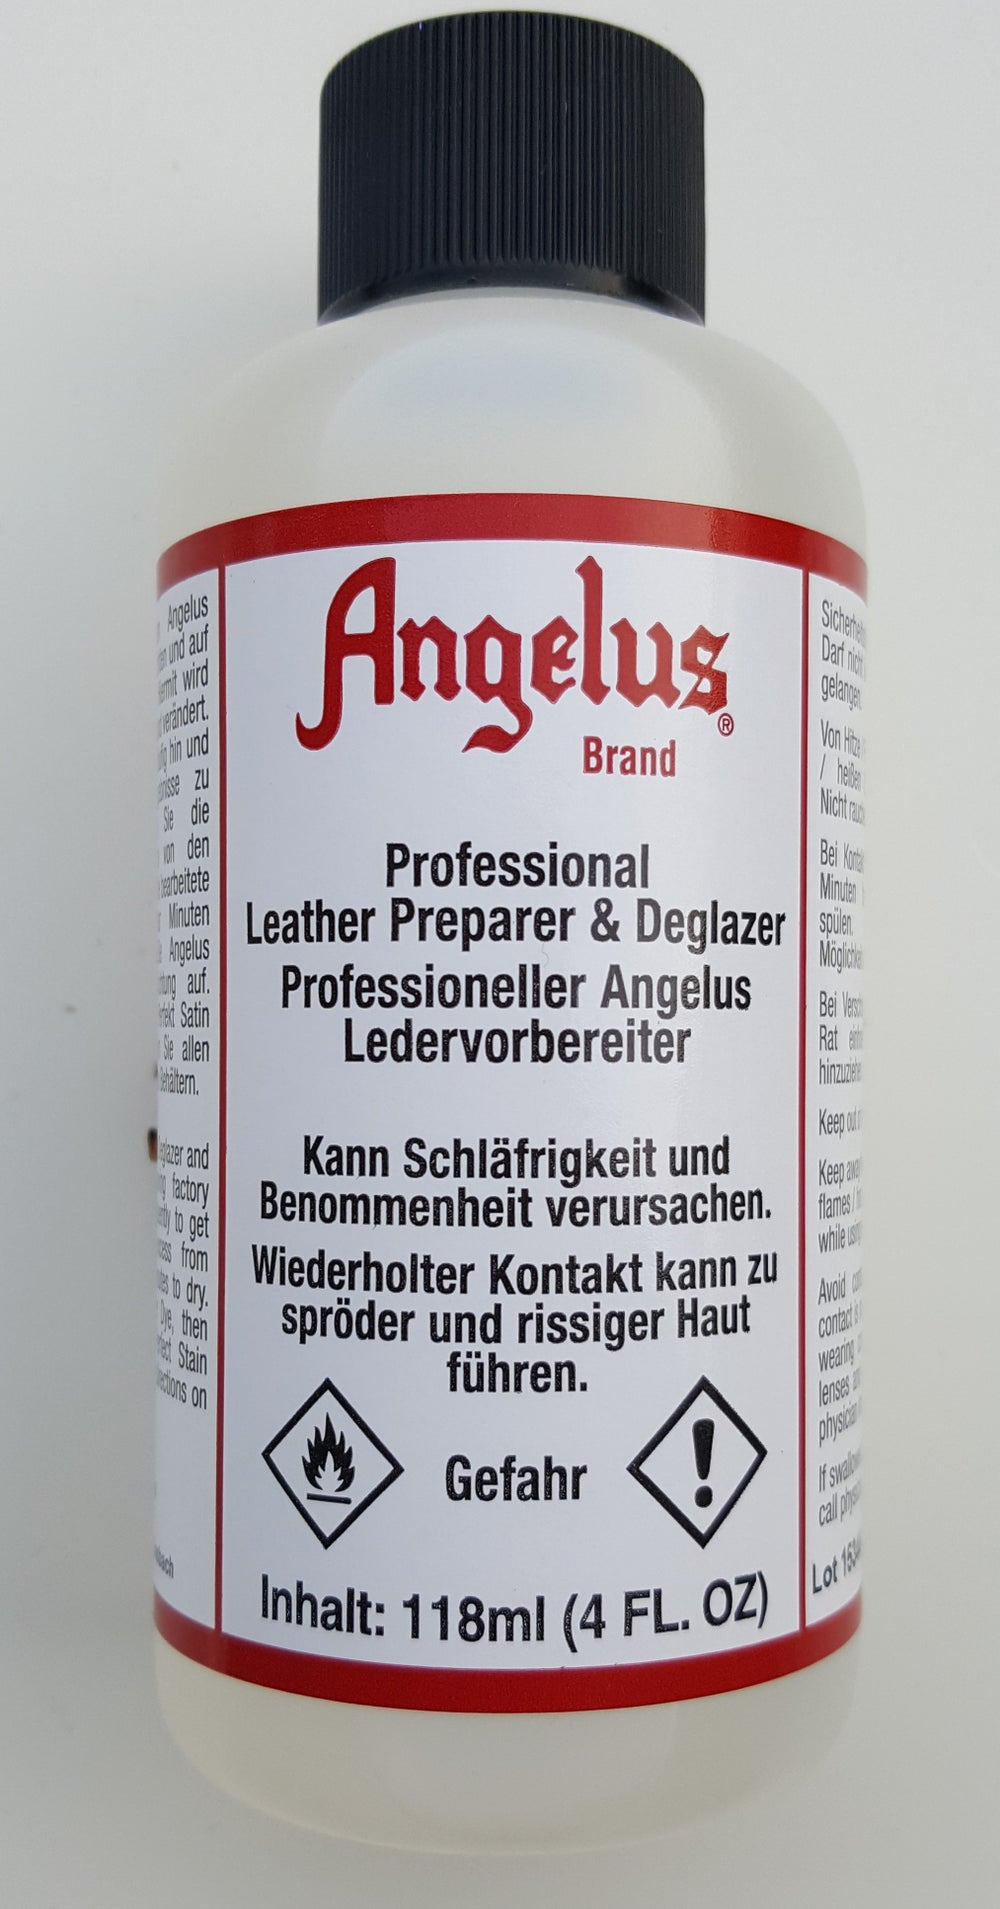 Image of Angelus Ledervorberiter/Leather Preparer & Deglazer